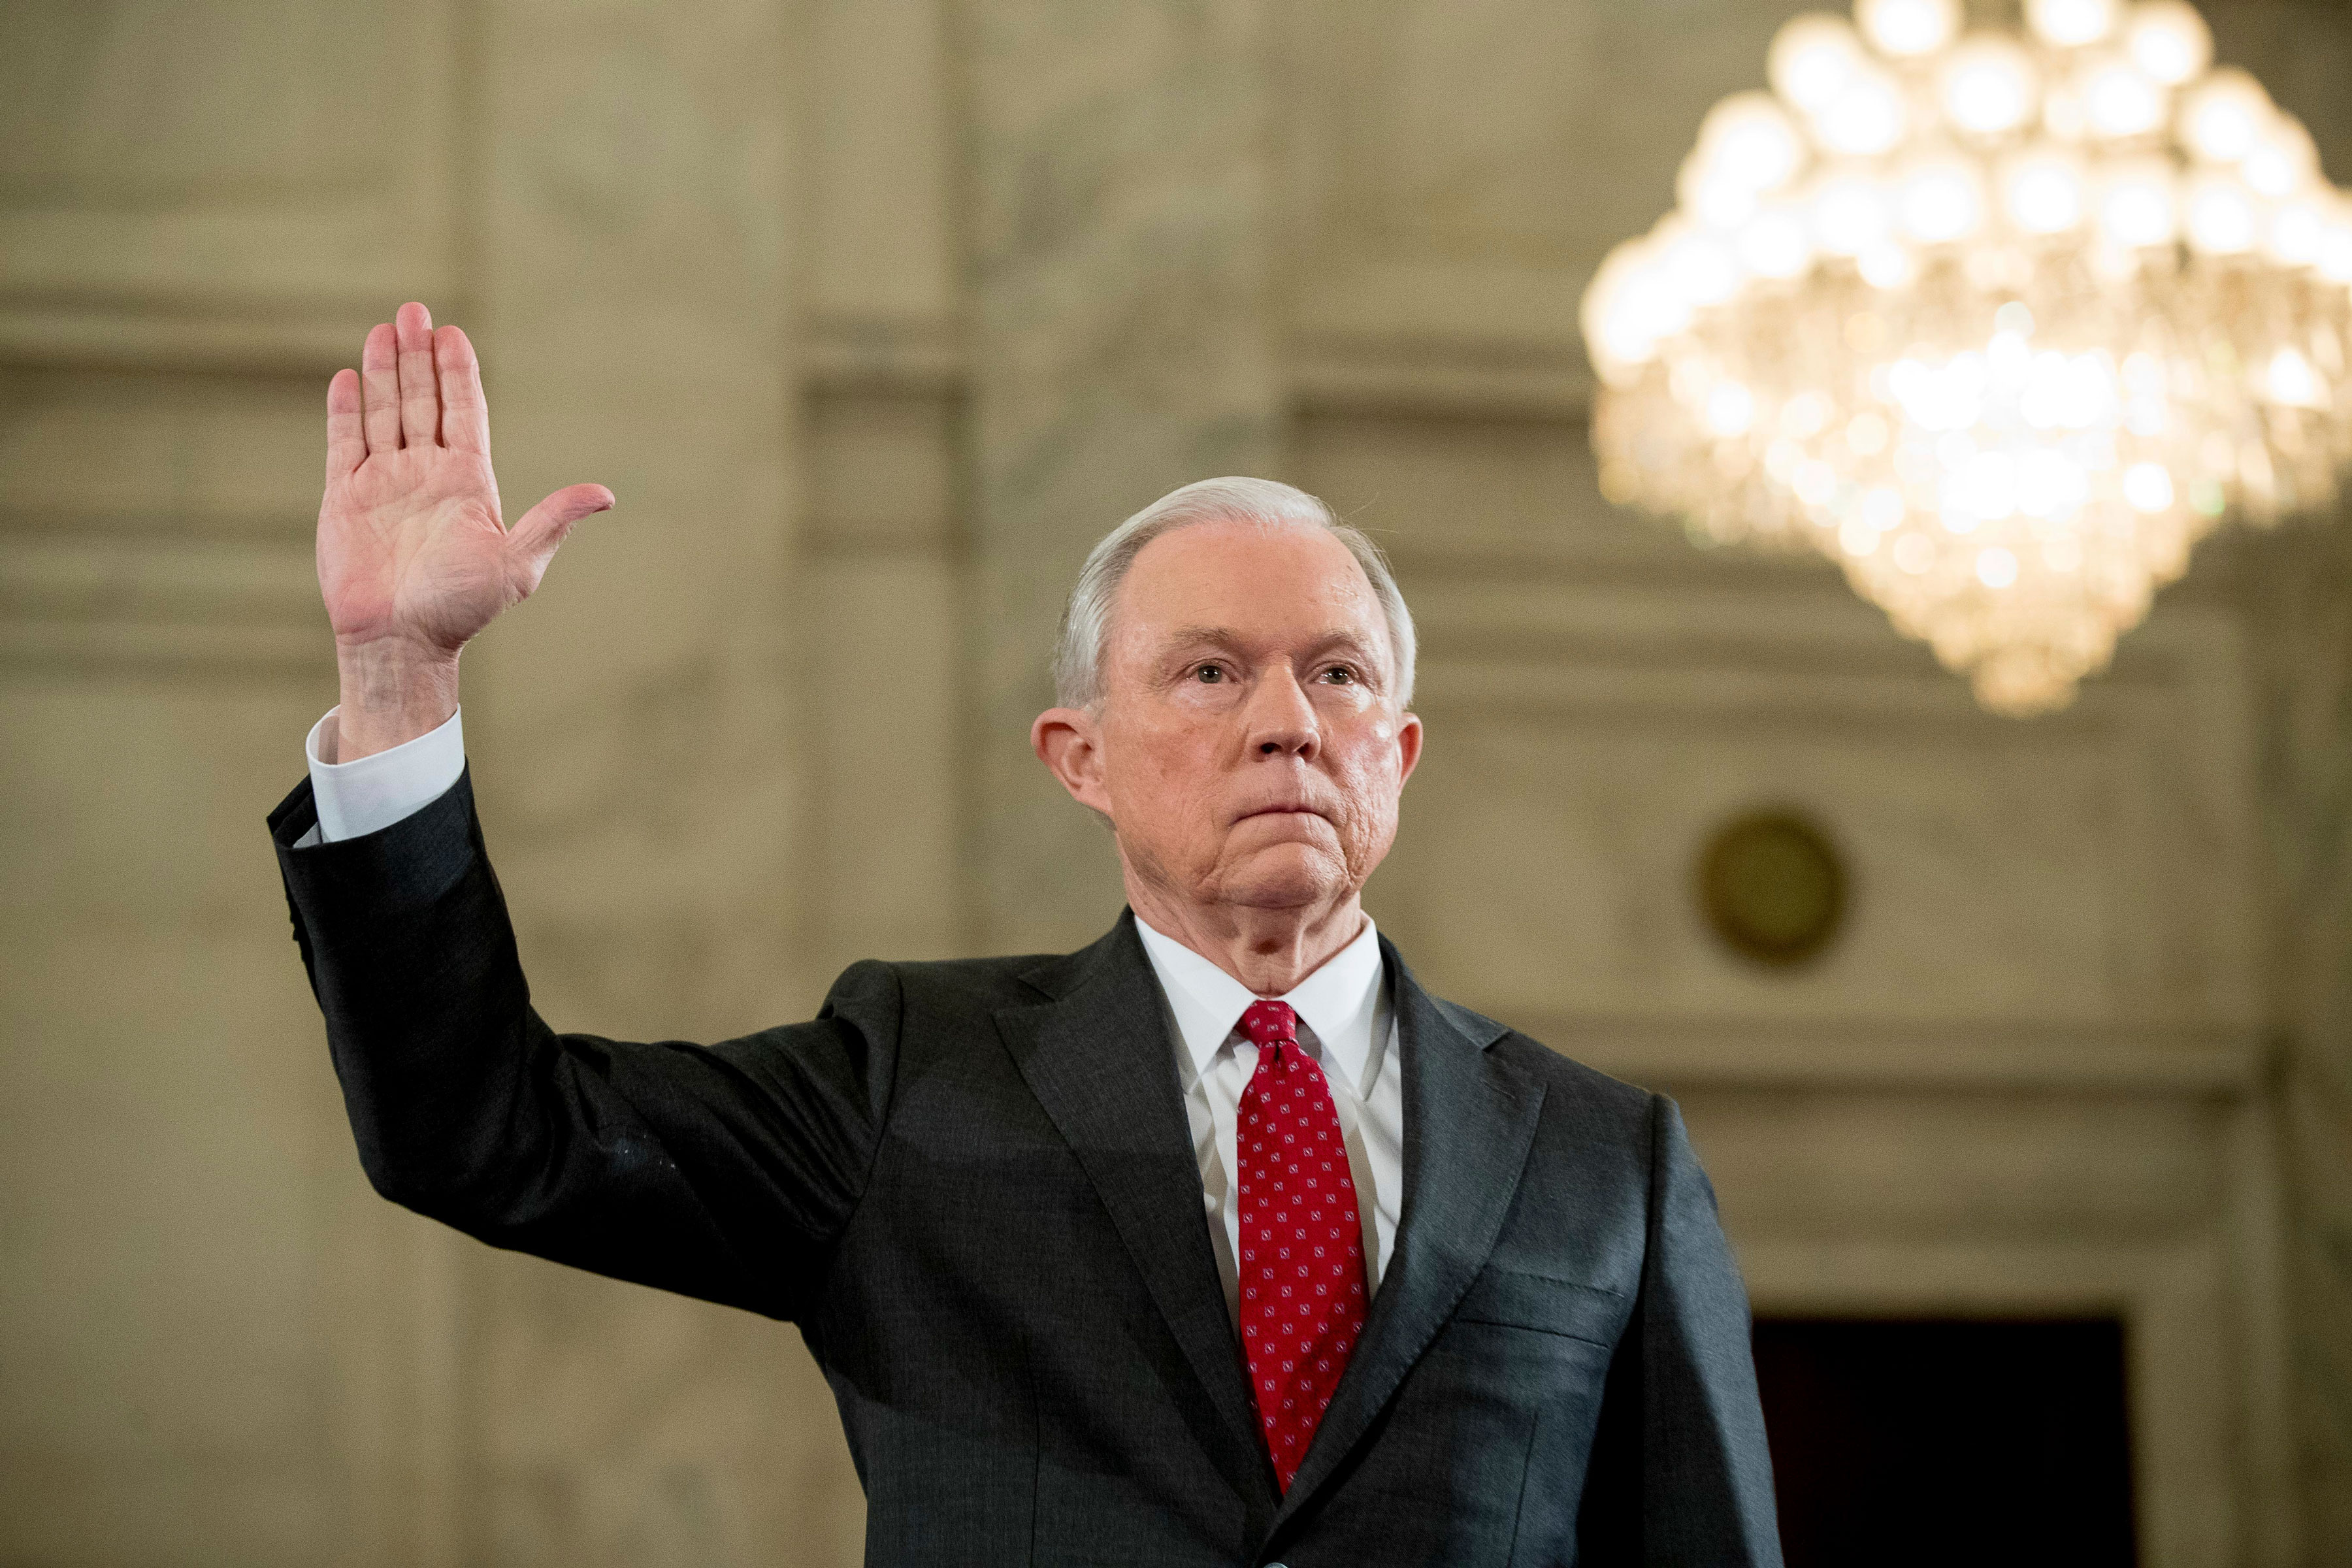 Photo: Jeff Sessions Confirmation Hearing Swearing In - AP Photo